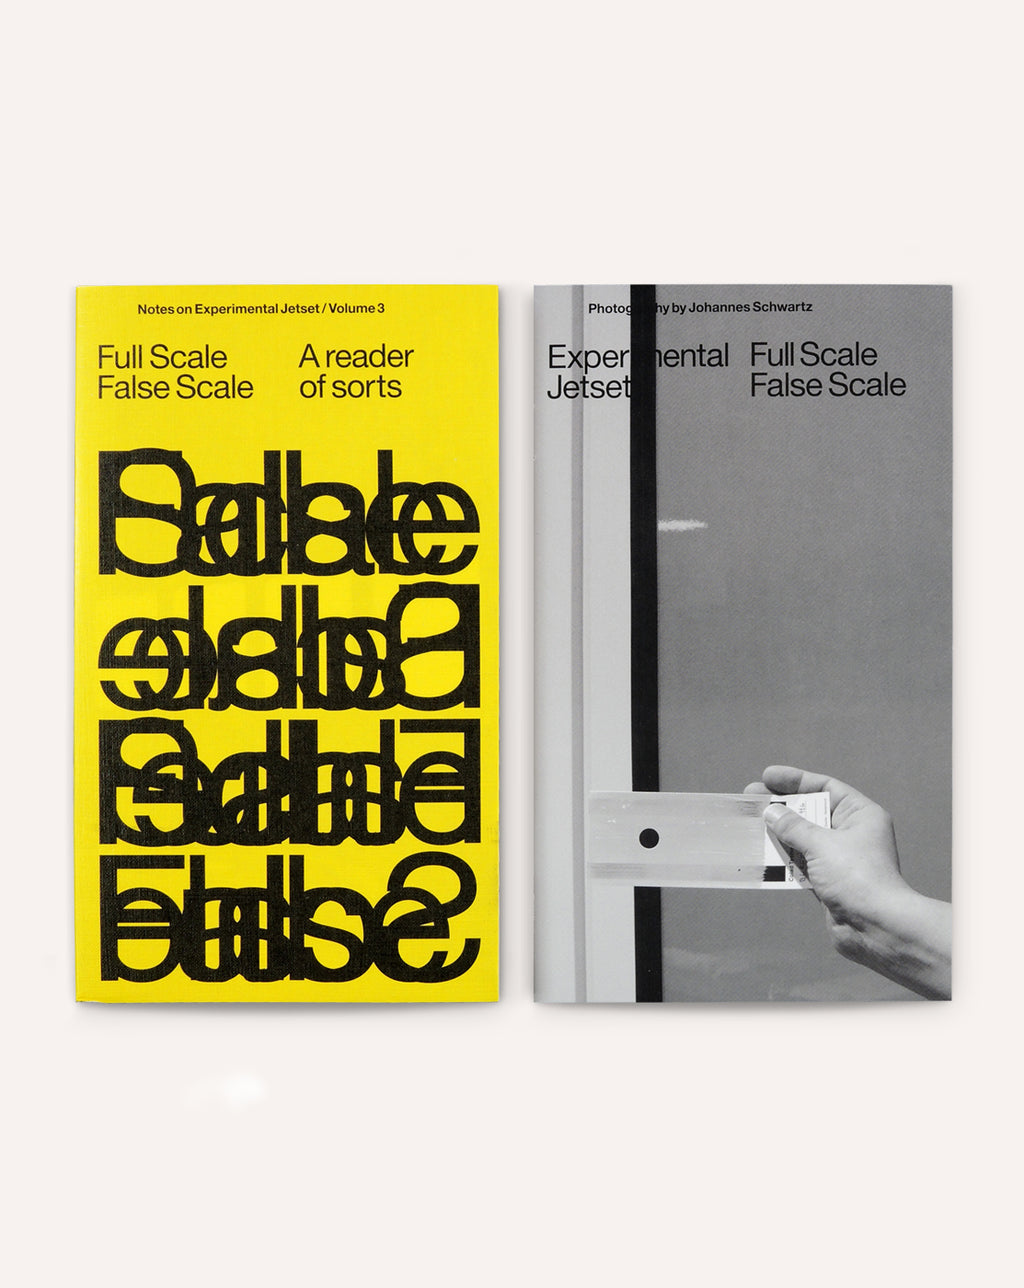 Full Scale, False Scale / Experimental Jetset